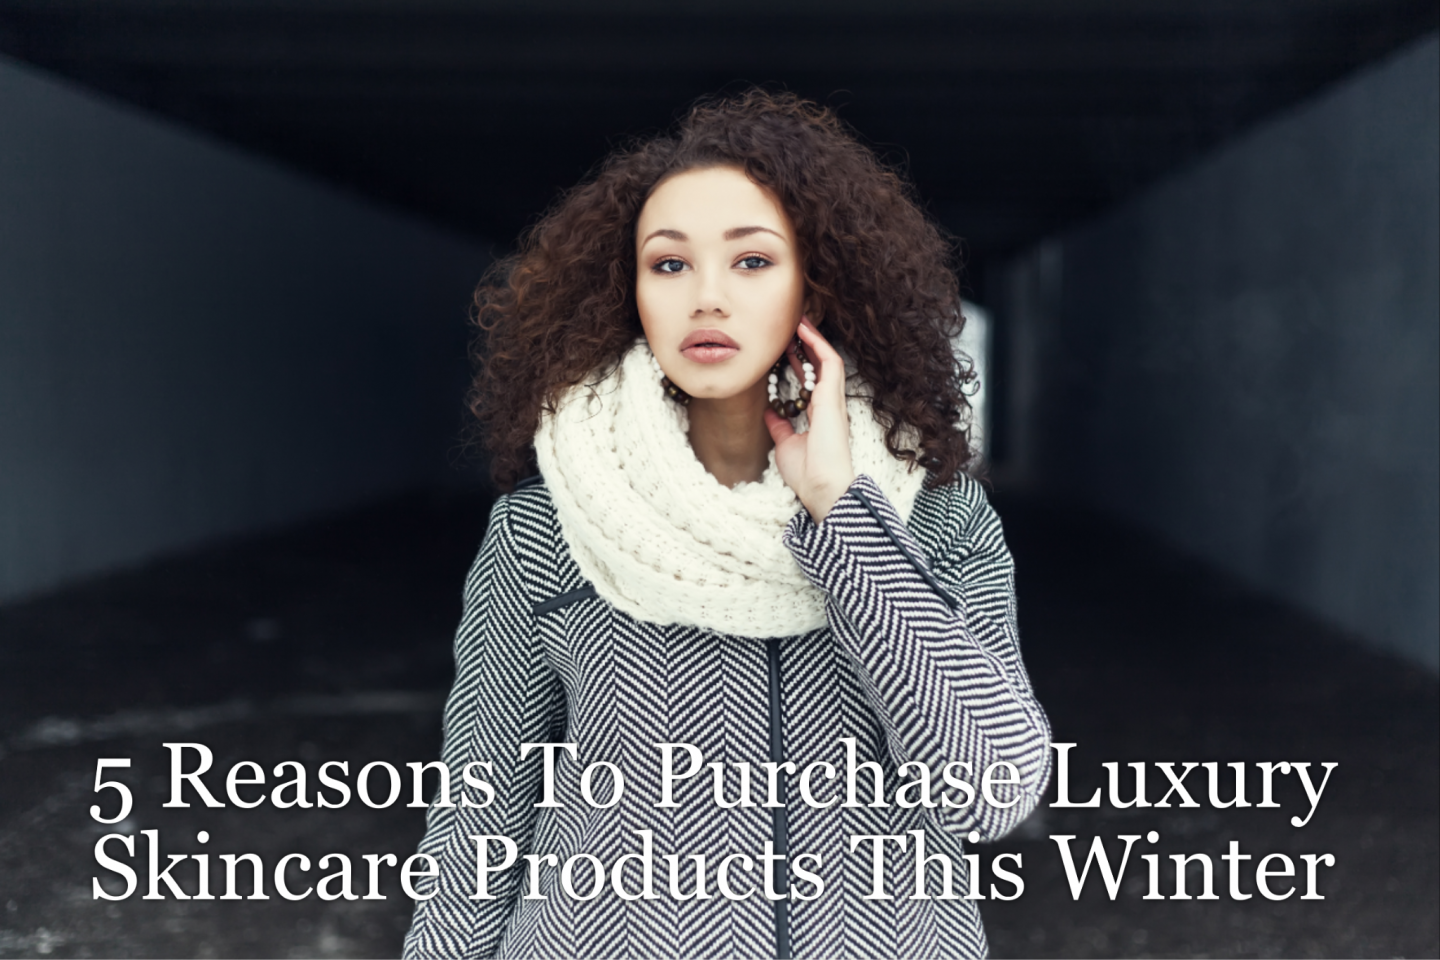 Why buy luxury skincare products? We've got five reasons that will help to justify spending a little bit more on yourself and your skin this winter.